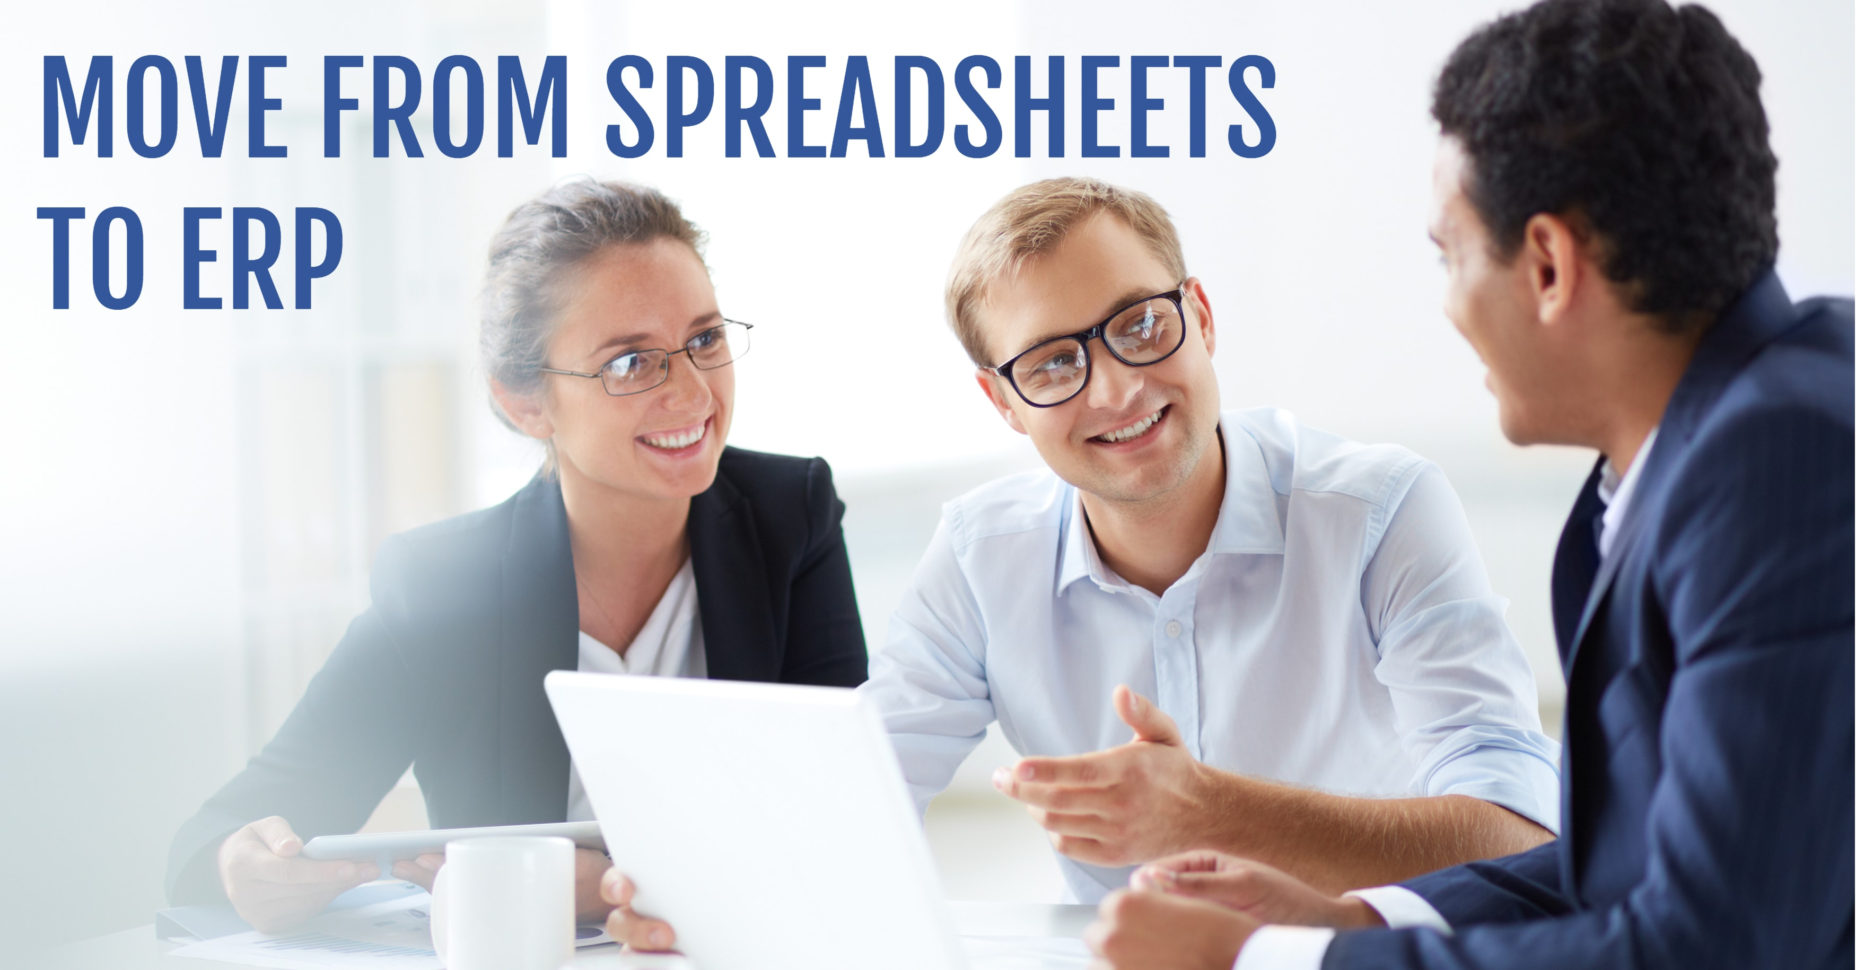 Erp Spreadsheet Intended For How To Move From Spreadsheets